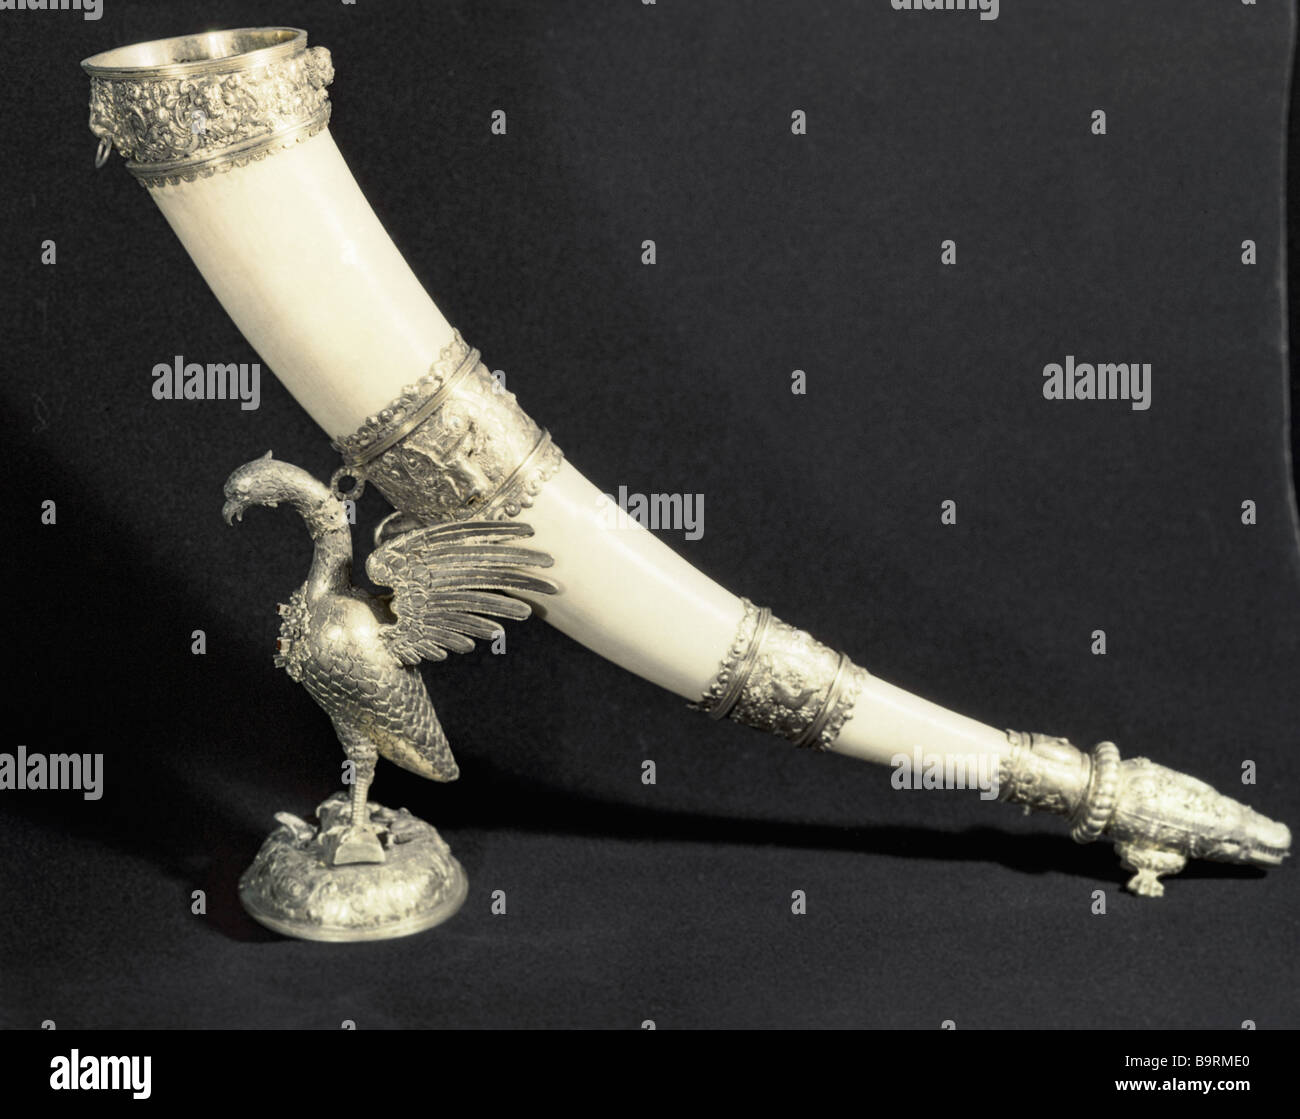 Ivory wine horn mounted in silver gilt from the collection of the Moscow Kremlin s Armory - Stock Image